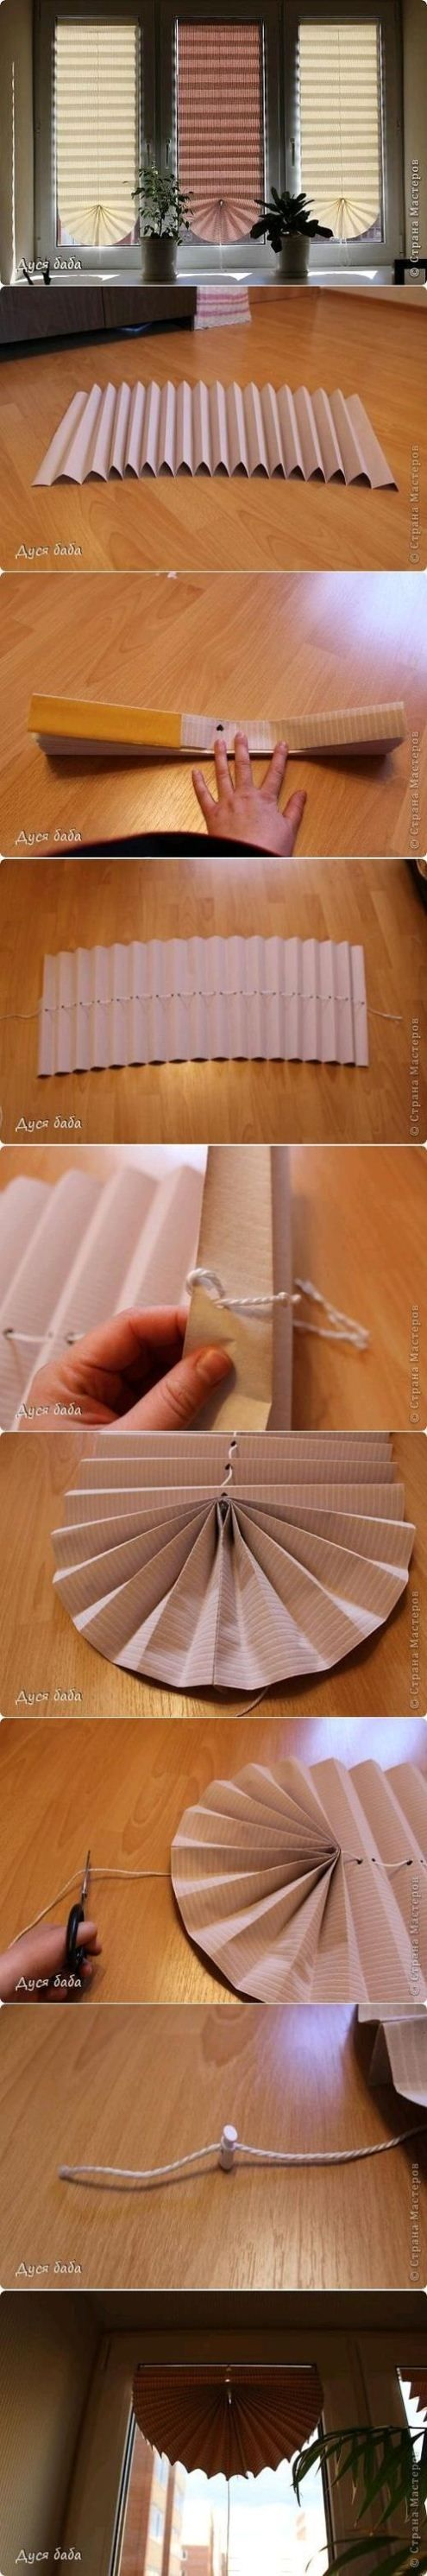 Homemade Custome Privacy Mini blinds. Seriously Smart Hack!